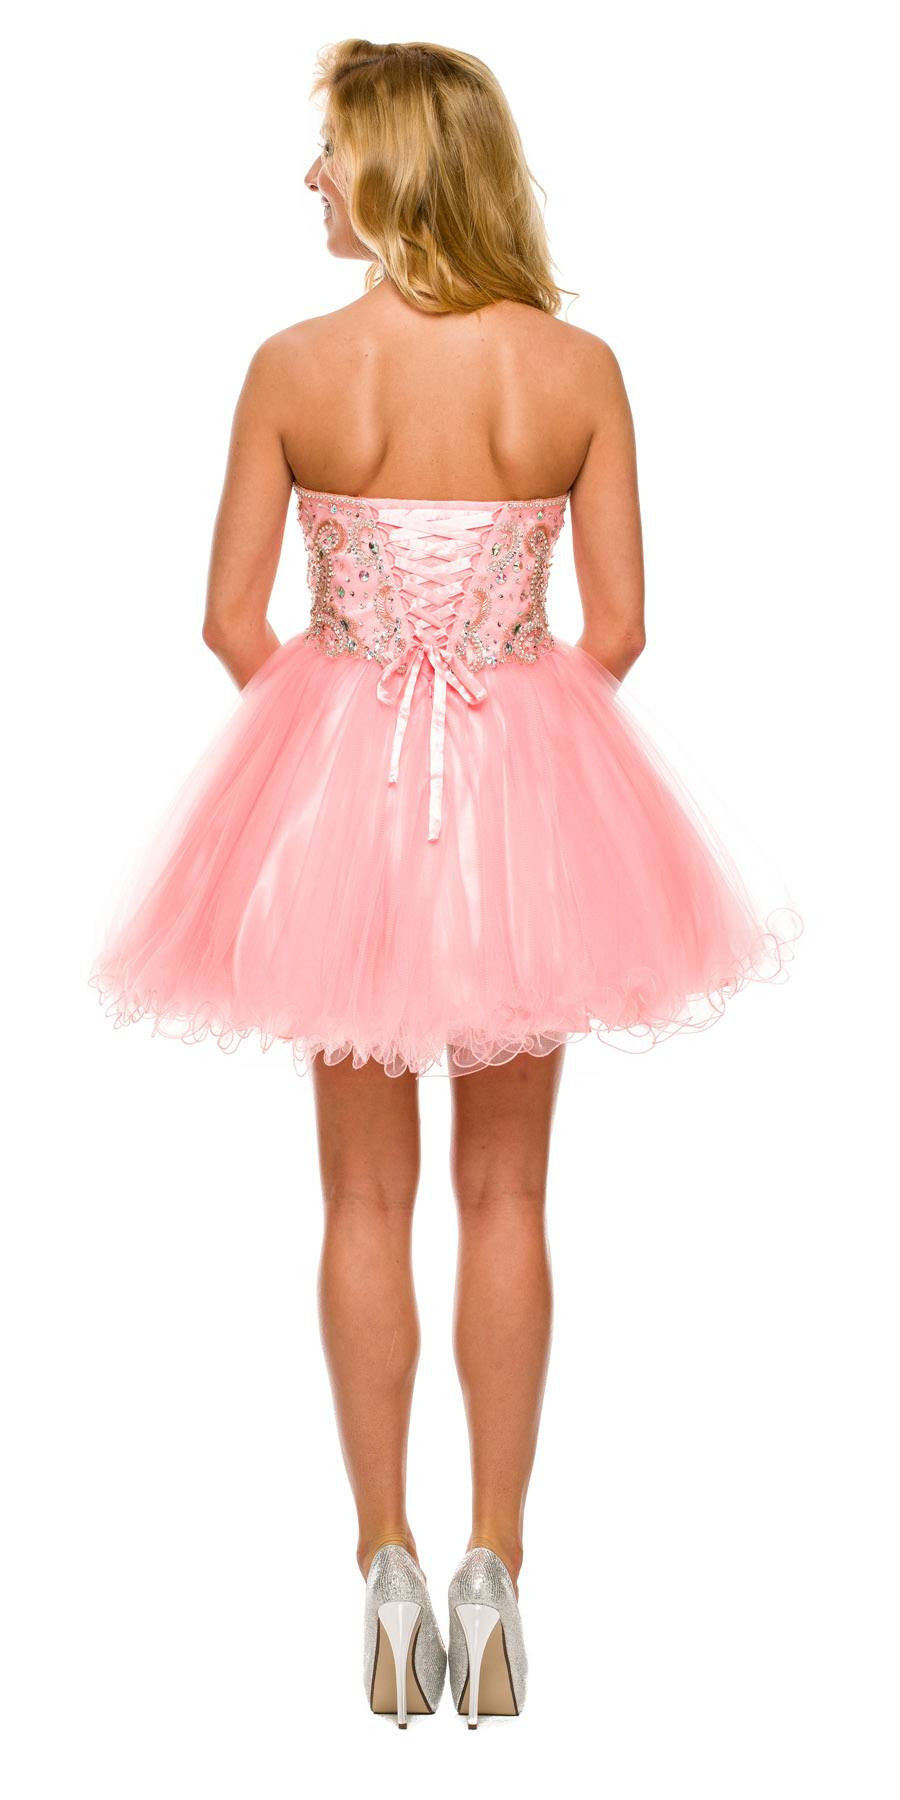 Short A Line Poofy Ball Gown Blush Tulle Skirt Strapless Beads Back